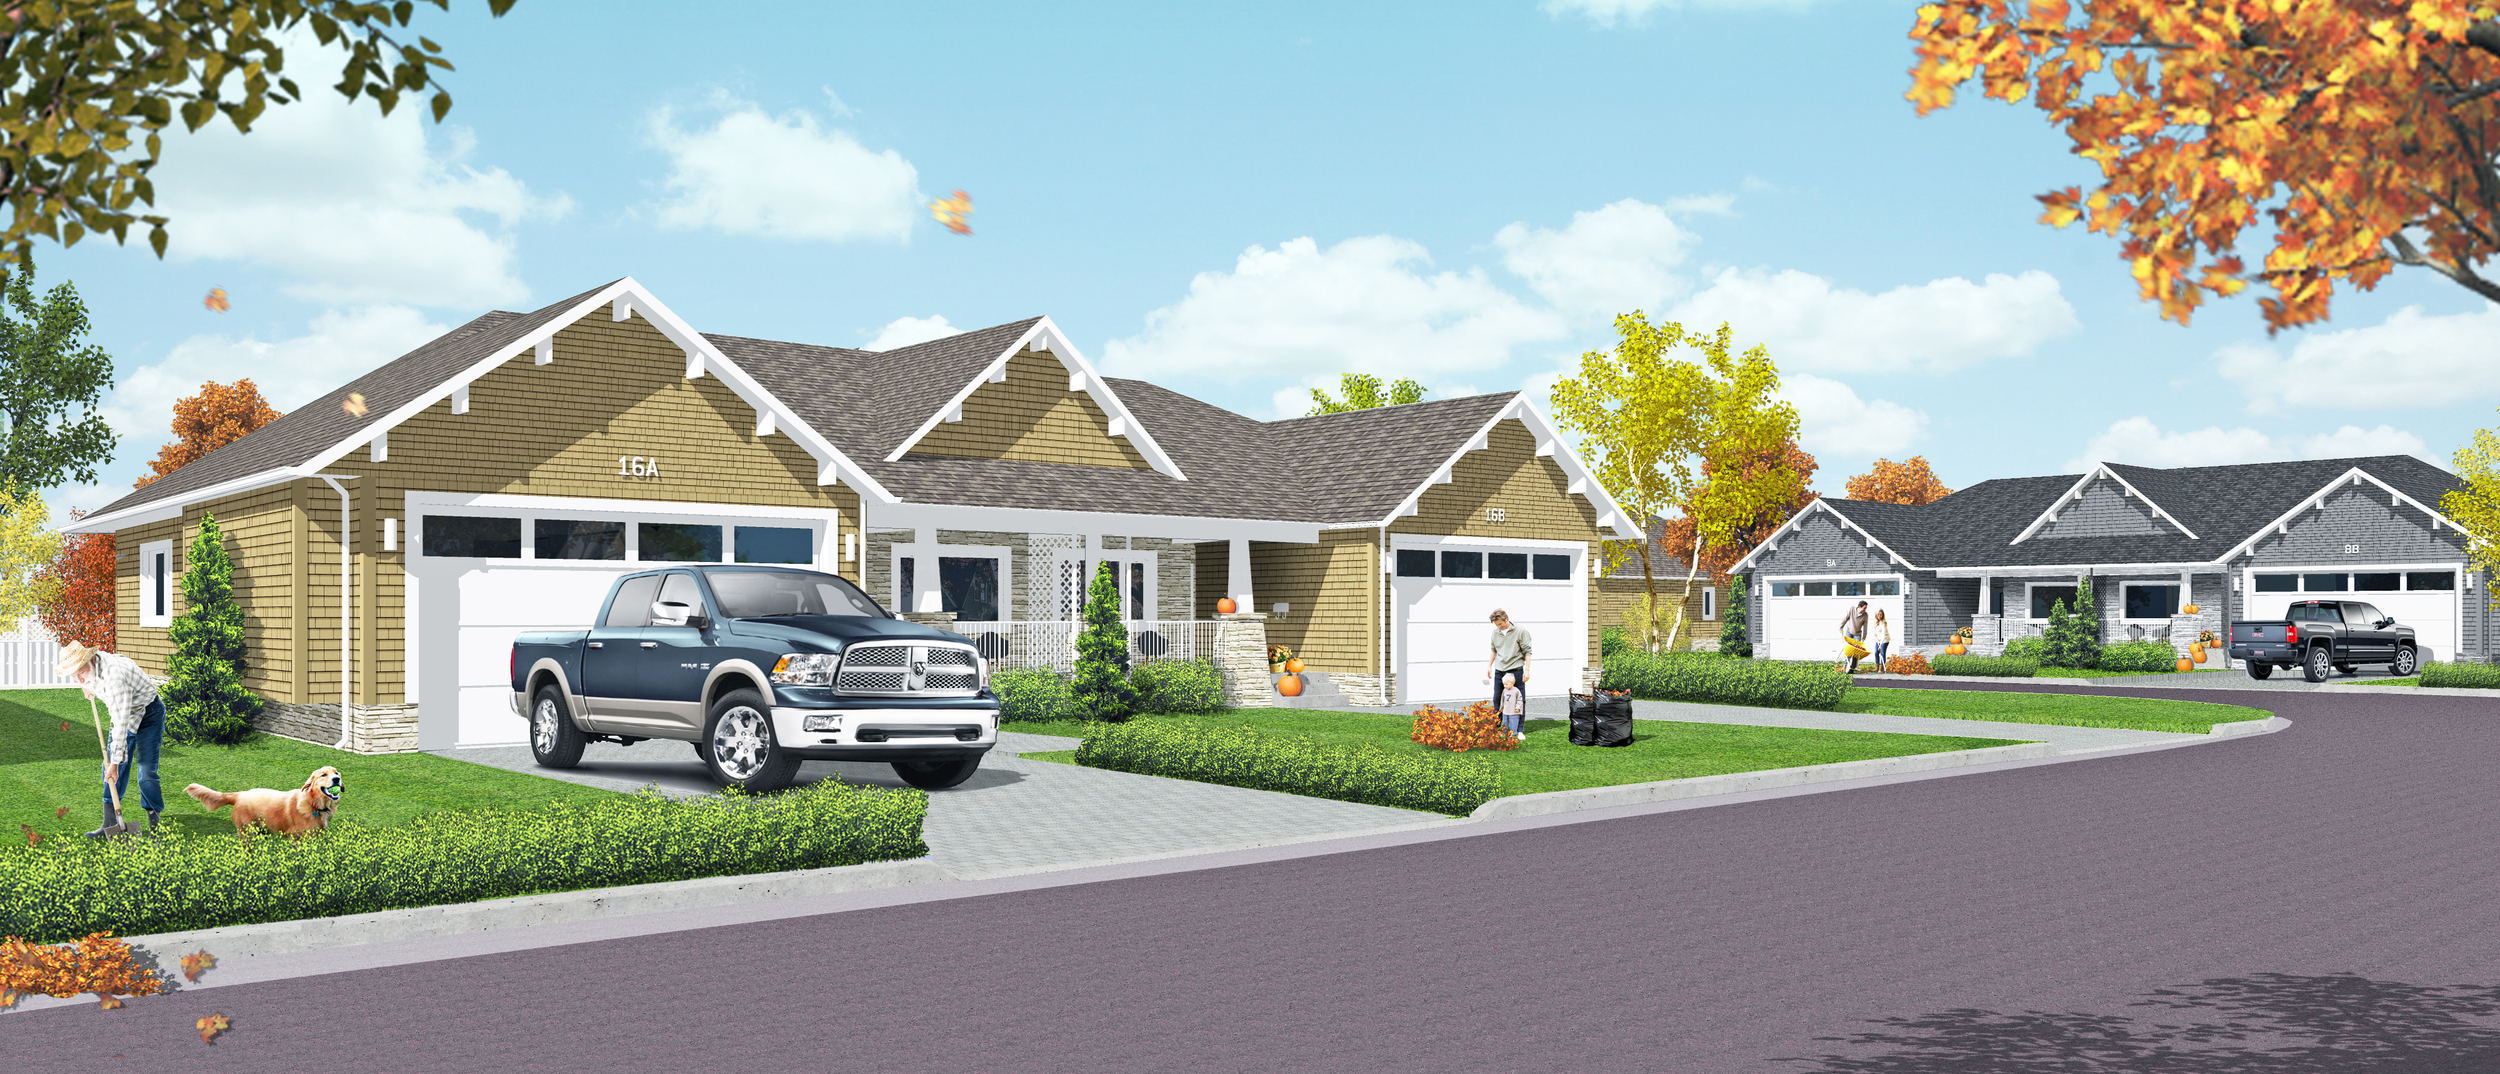 Meighen Estates_Rendering_1_all white trim_cropped.jpg